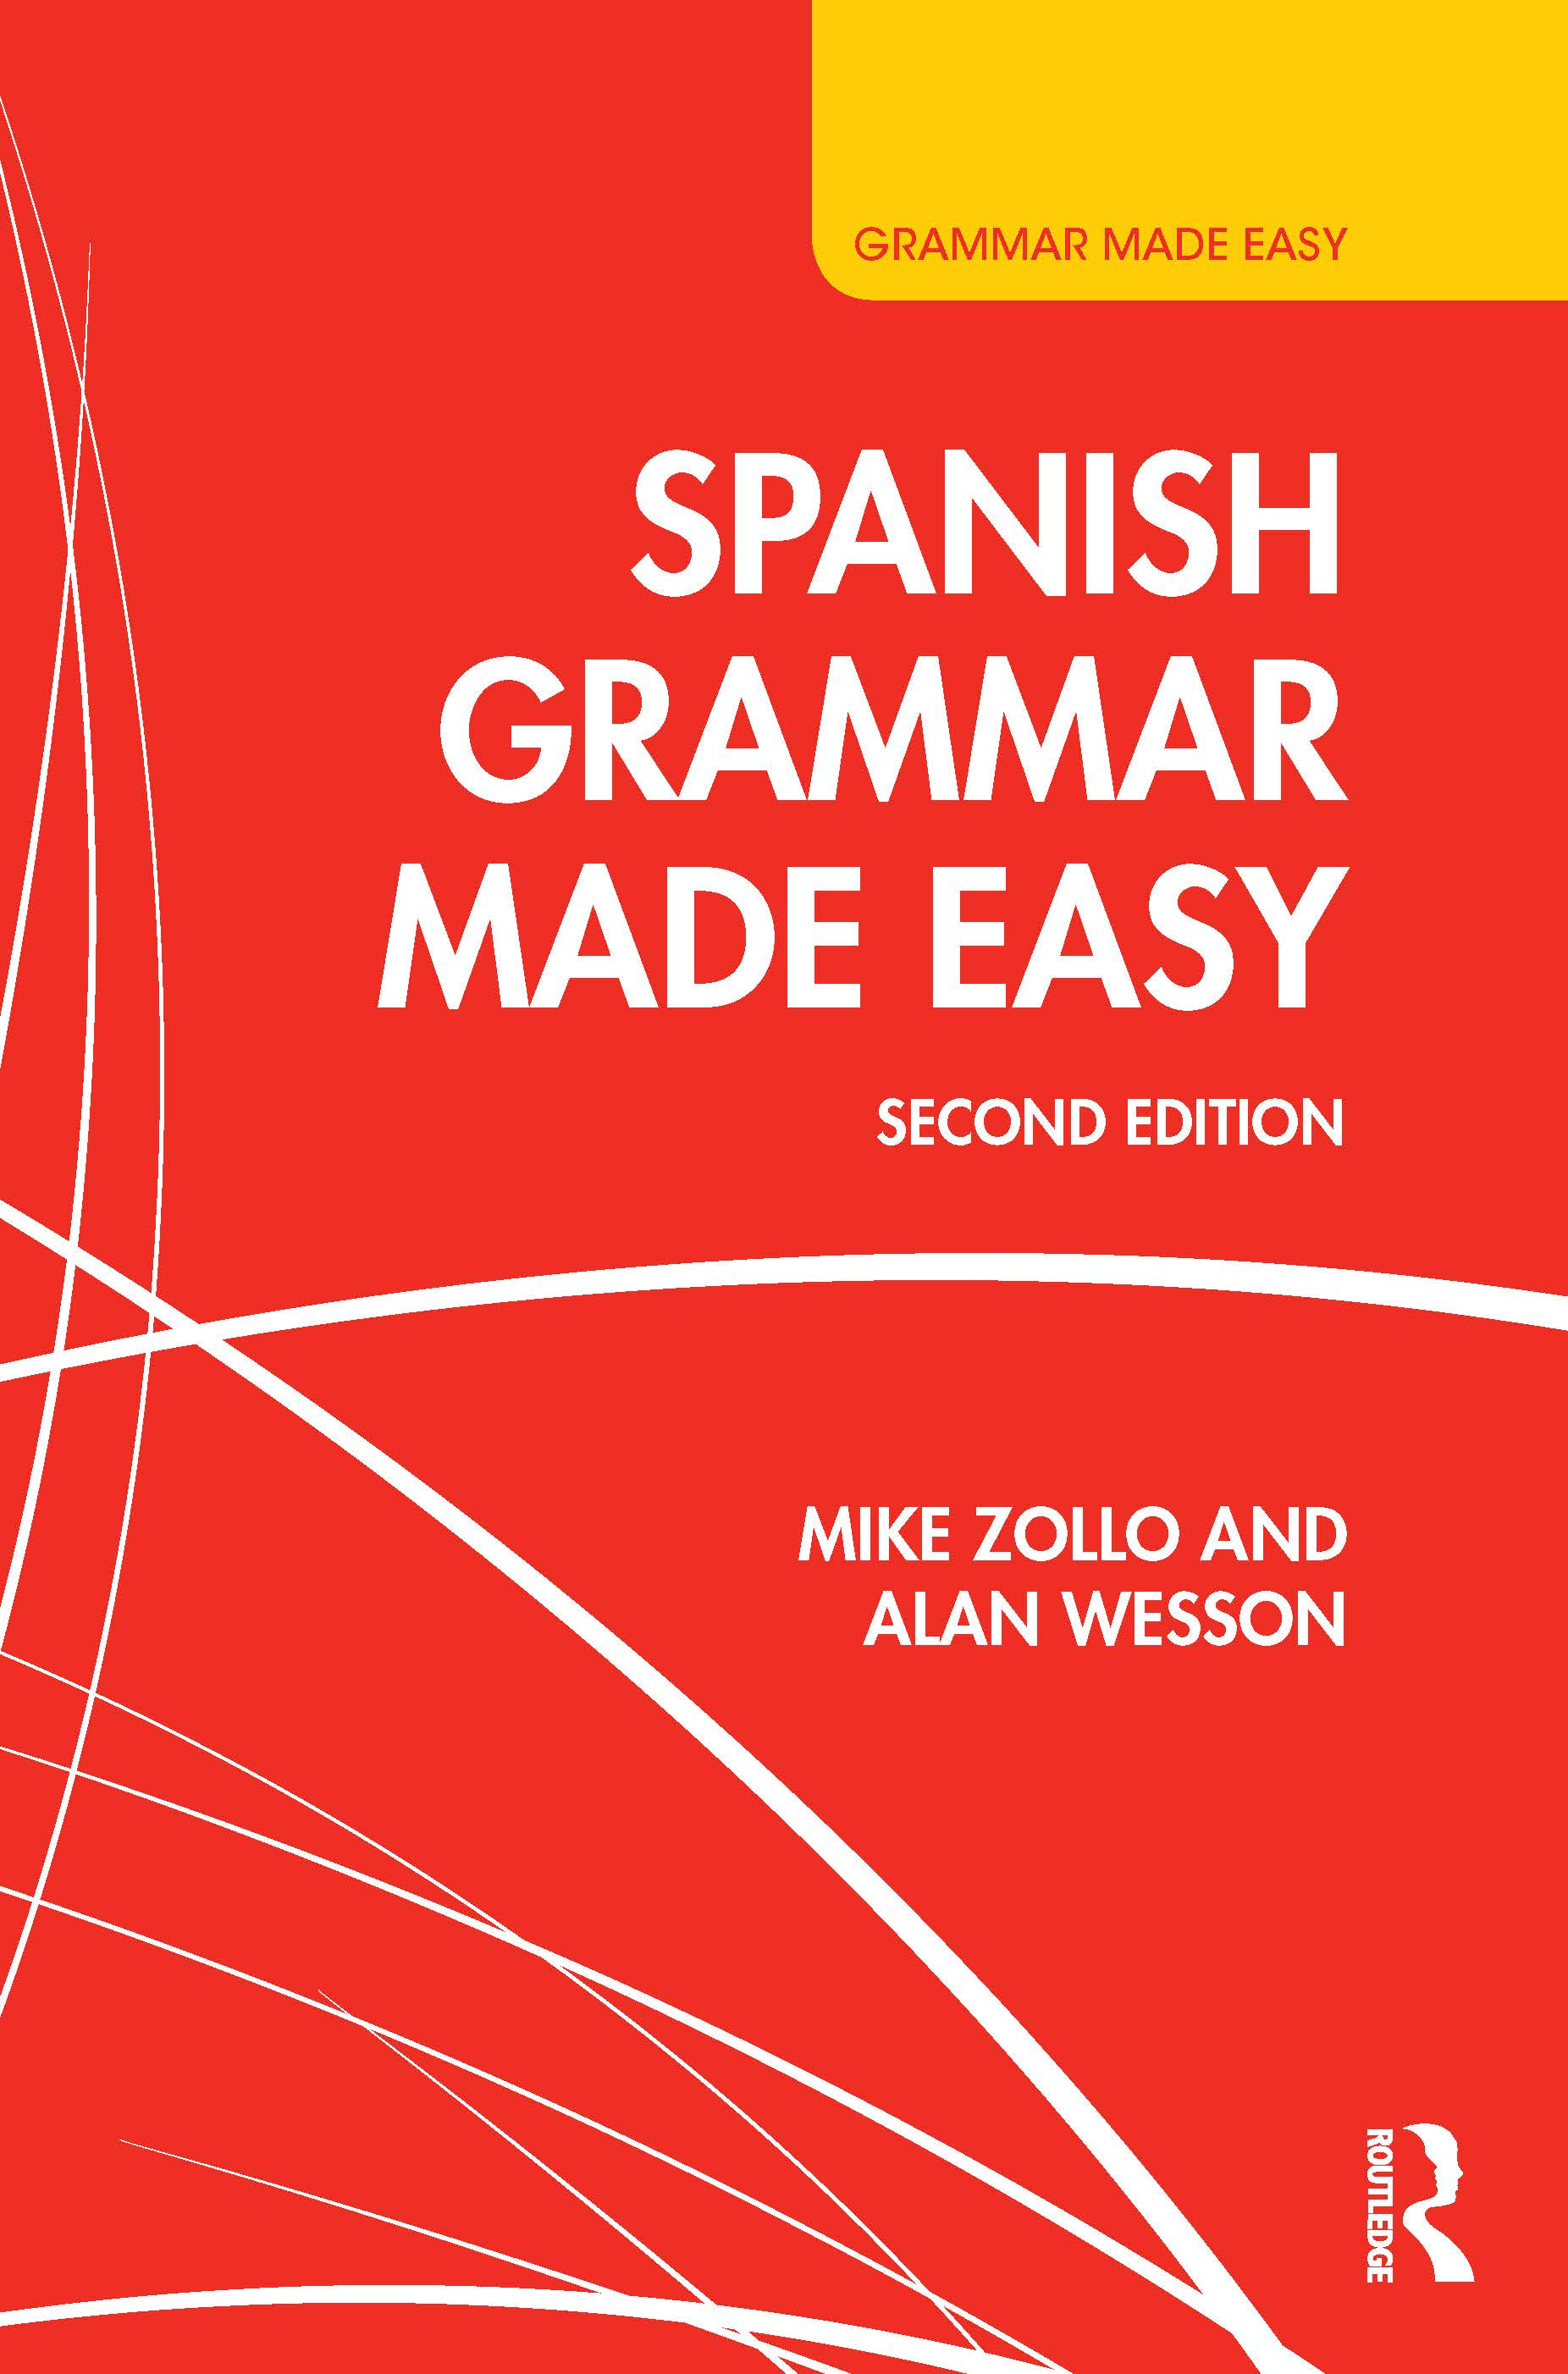 Spanish Grammar Made Easy book cover